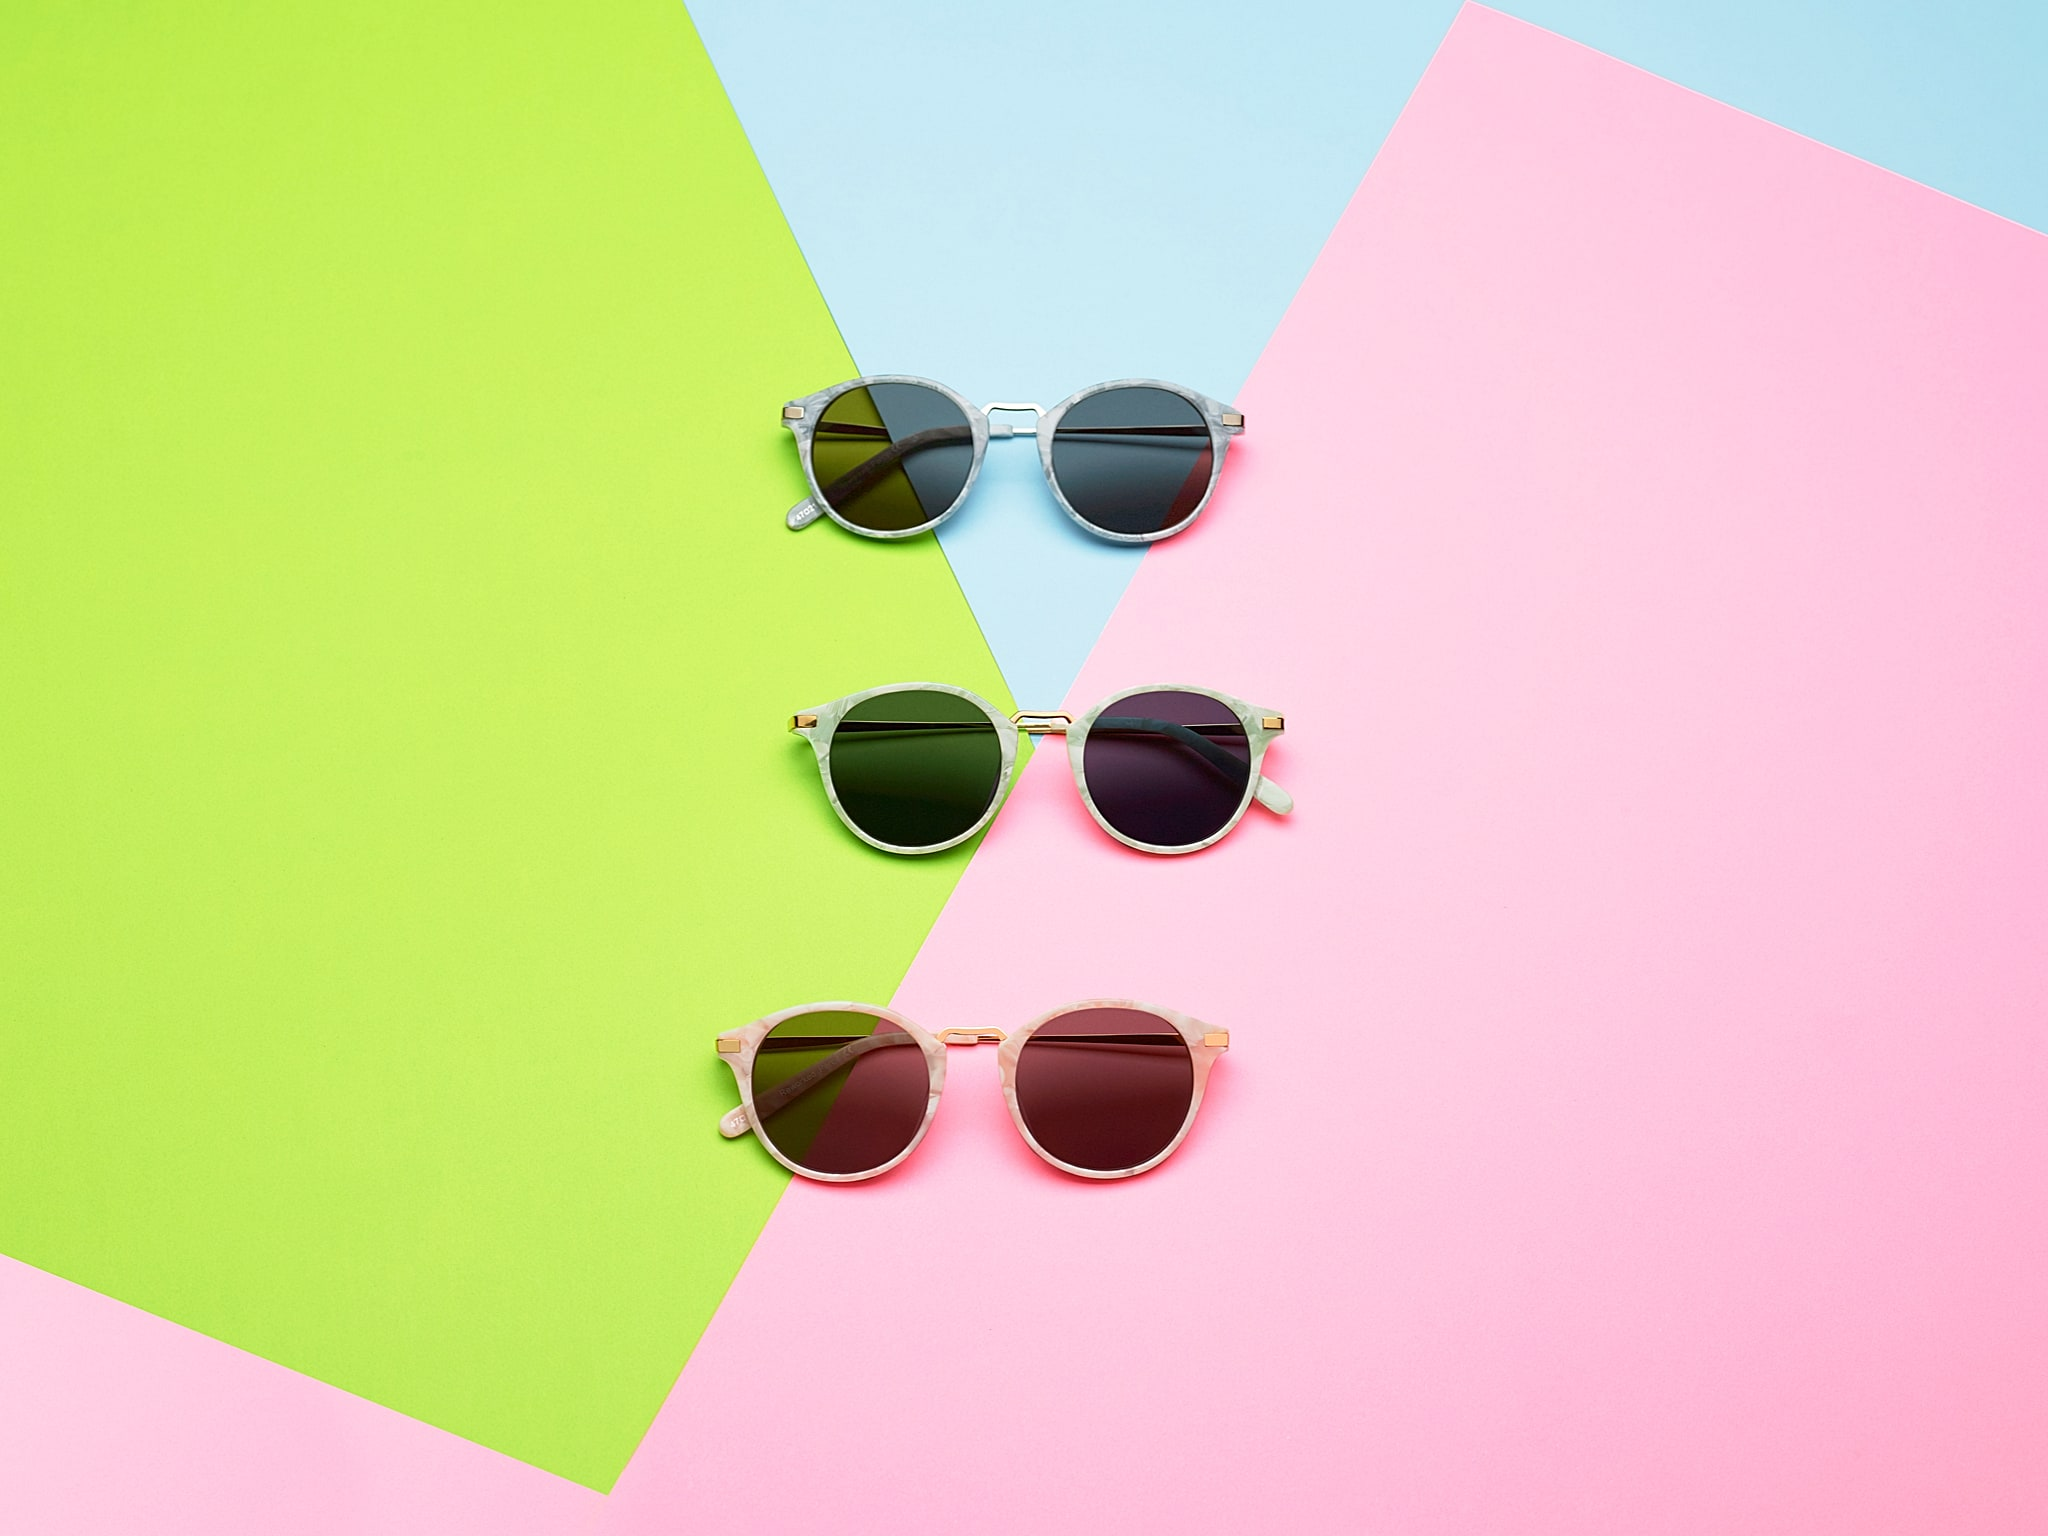 Product photography of sunglasses on color paper background with a summer feeling for Finlay & Co